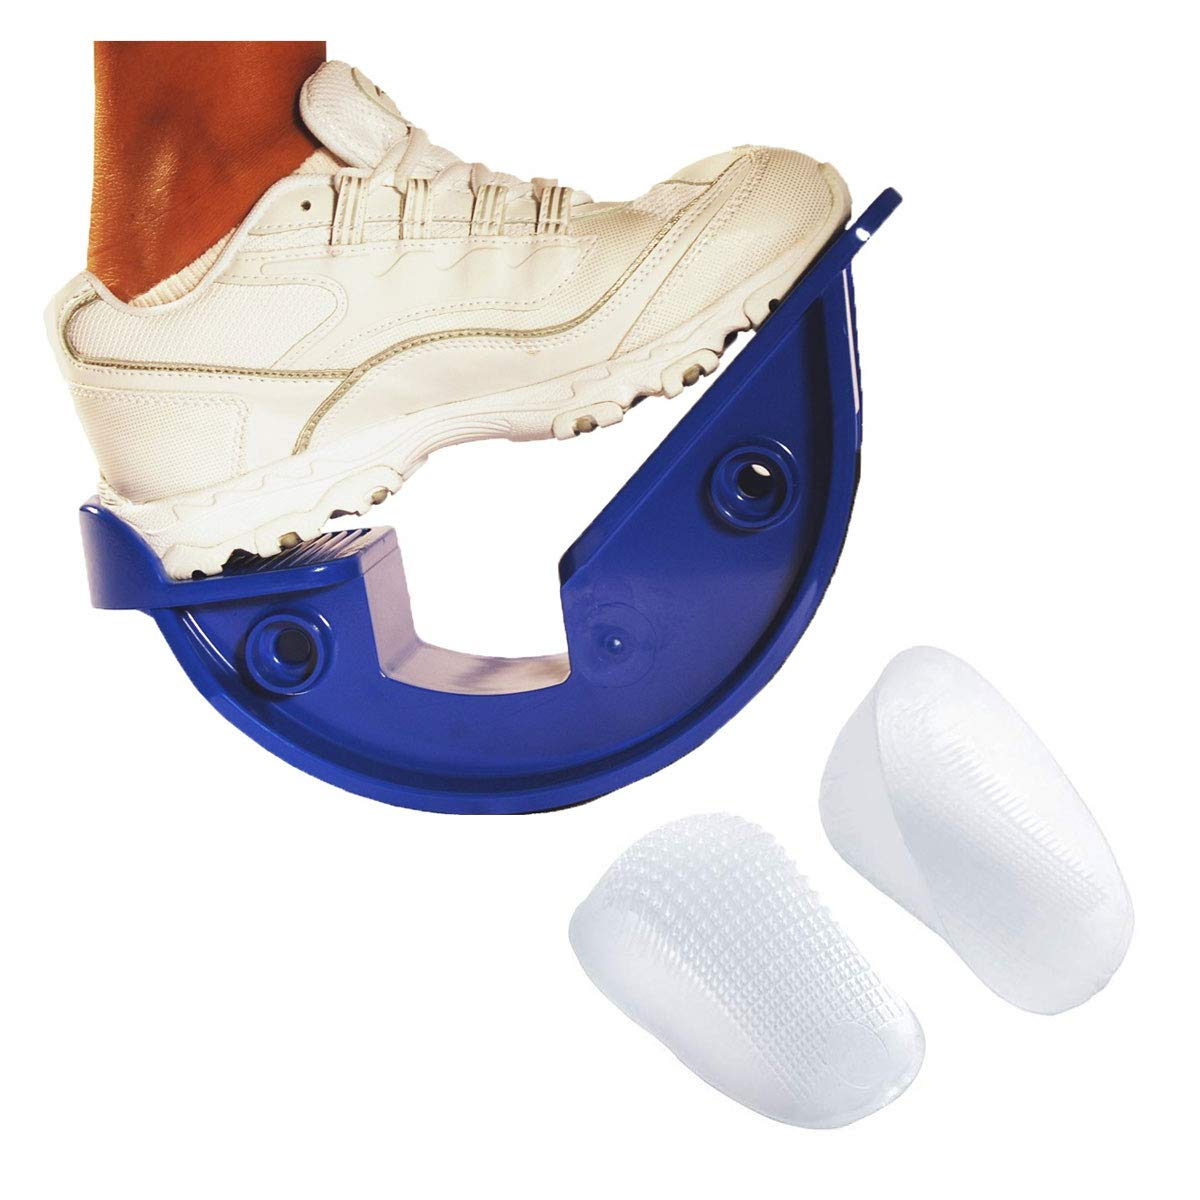 ProStretch Heel and Foot Pain Relief Kit, Includes ProStretch The Original Calf and Foot Stretcher and 1 Pair of Regular TuliGEL Classic Heel Cups by ProStretch